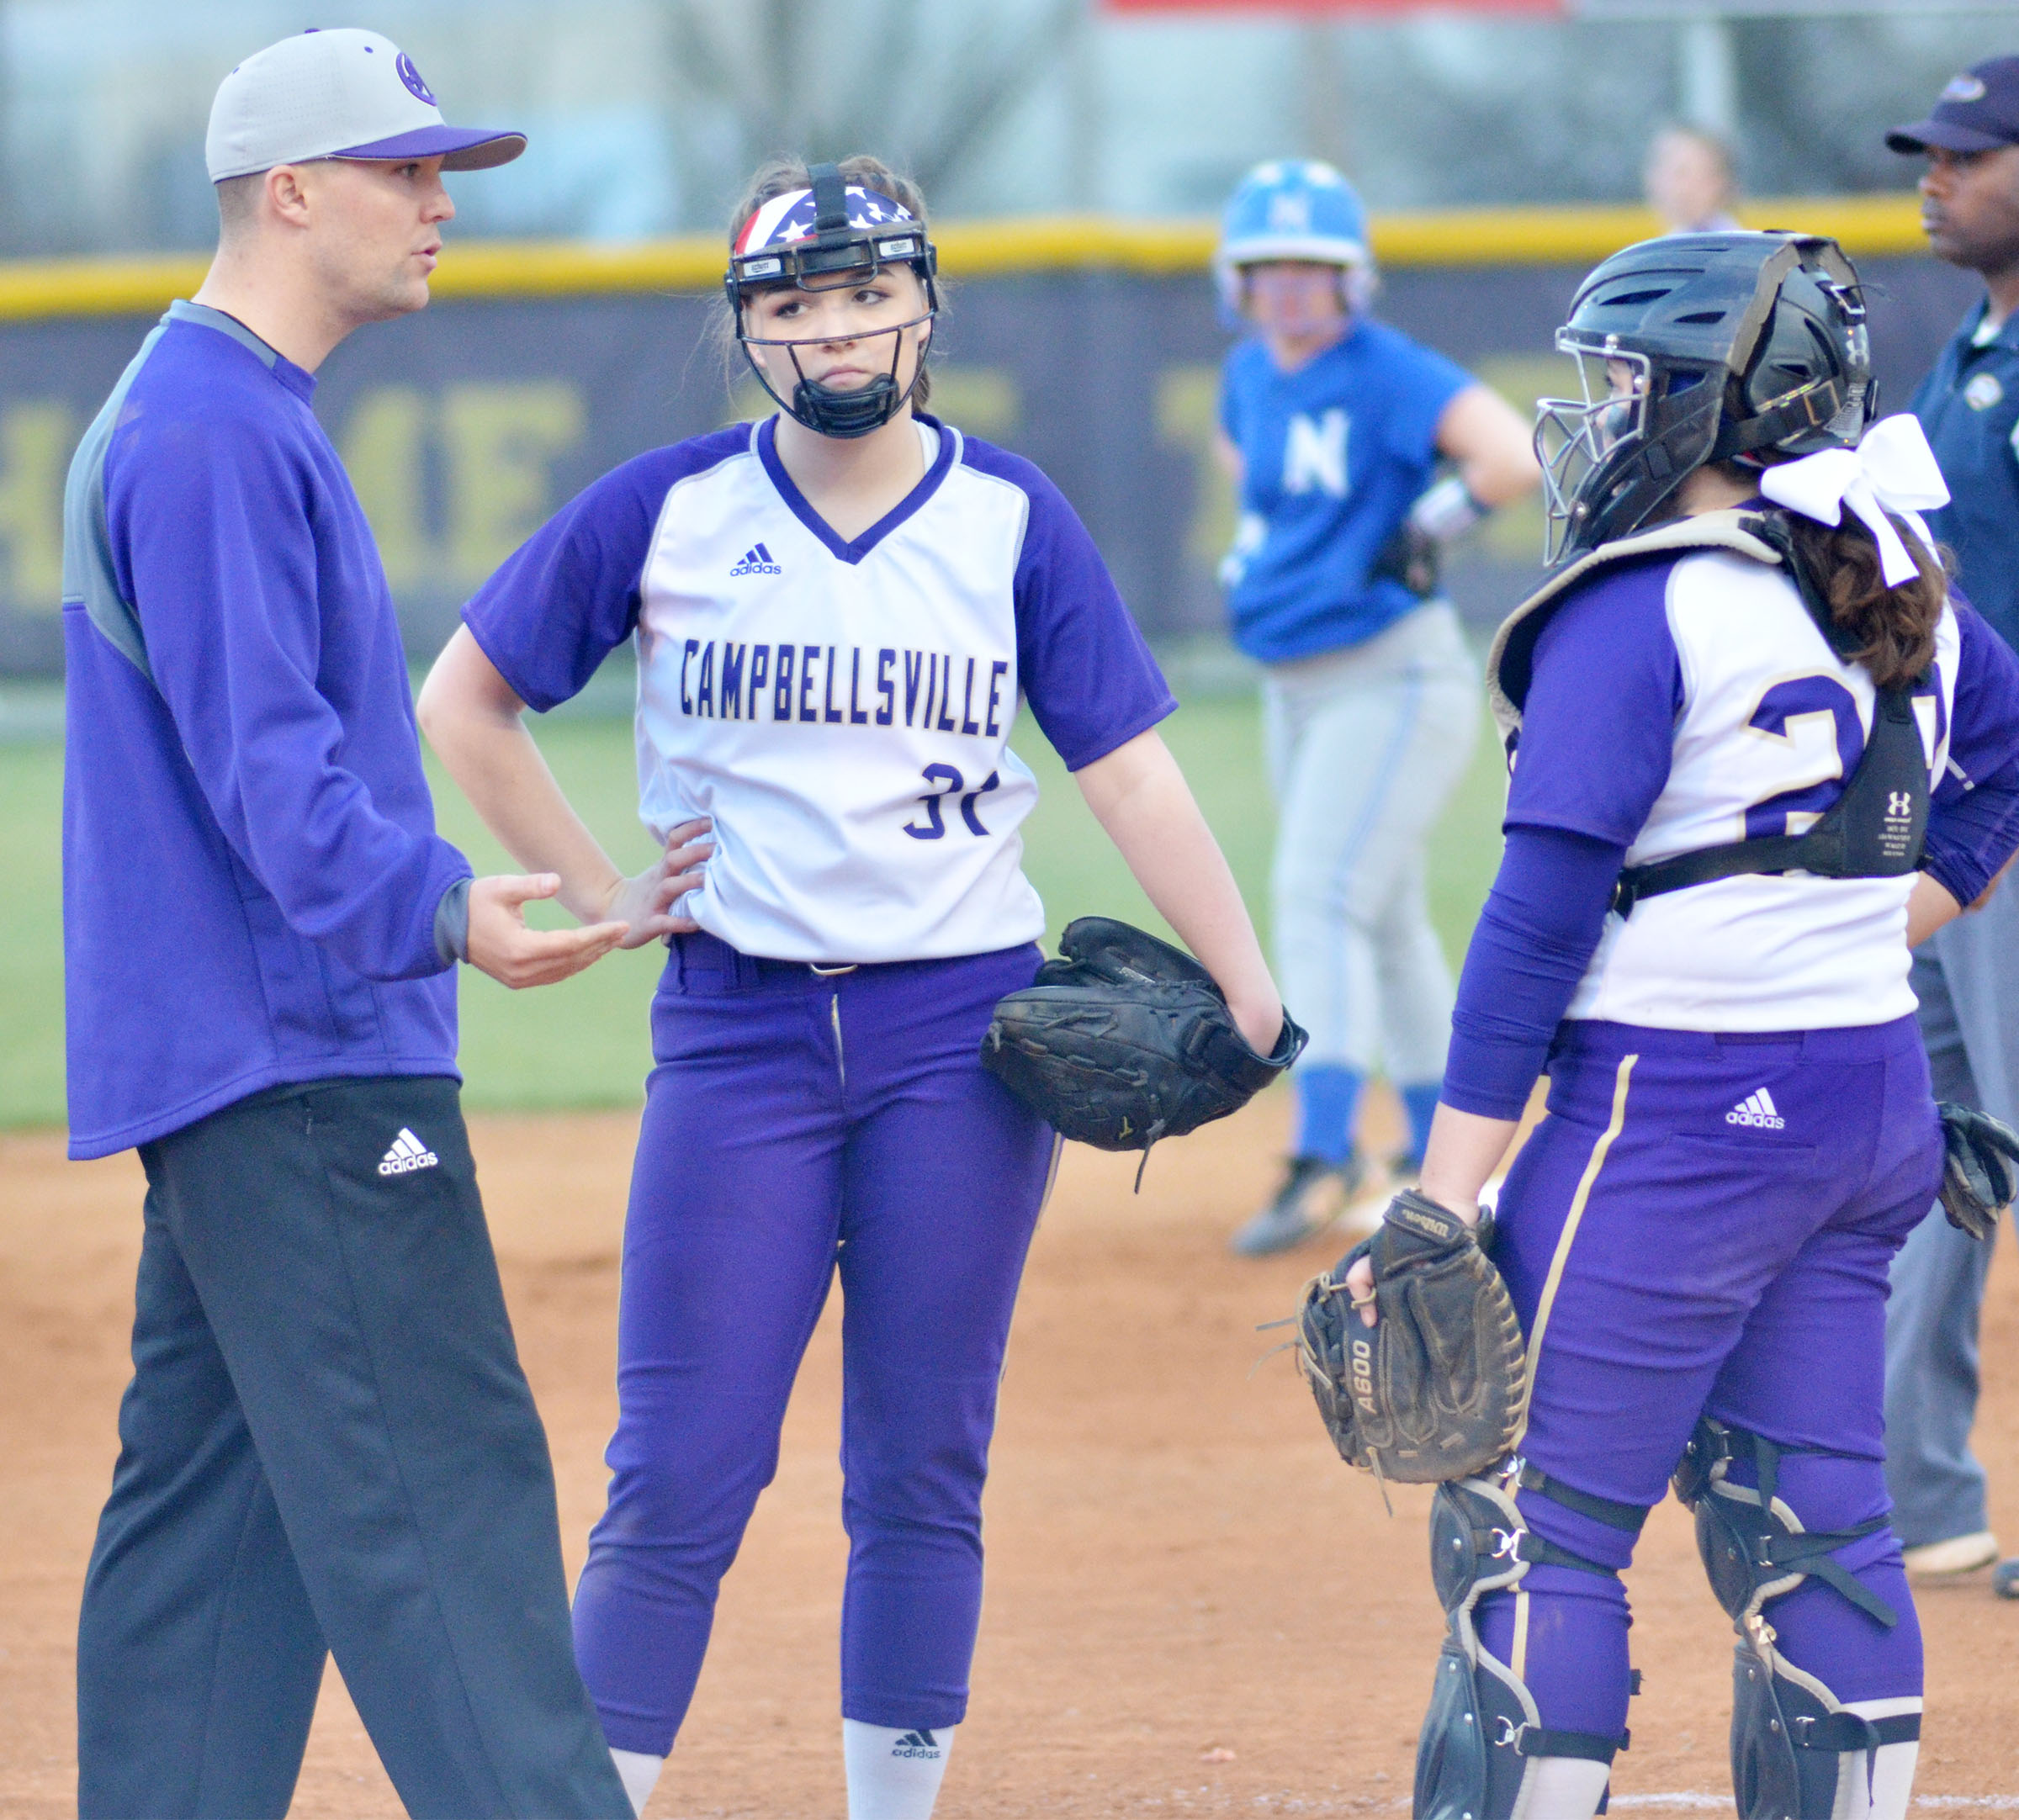 CHS head softball coach Weston Jones meets with Campbellsville Middle School eighth-grader Kenzi Forbis, who pitches for the Lady Eagles, and catcher Caitlin Bright, a junior.